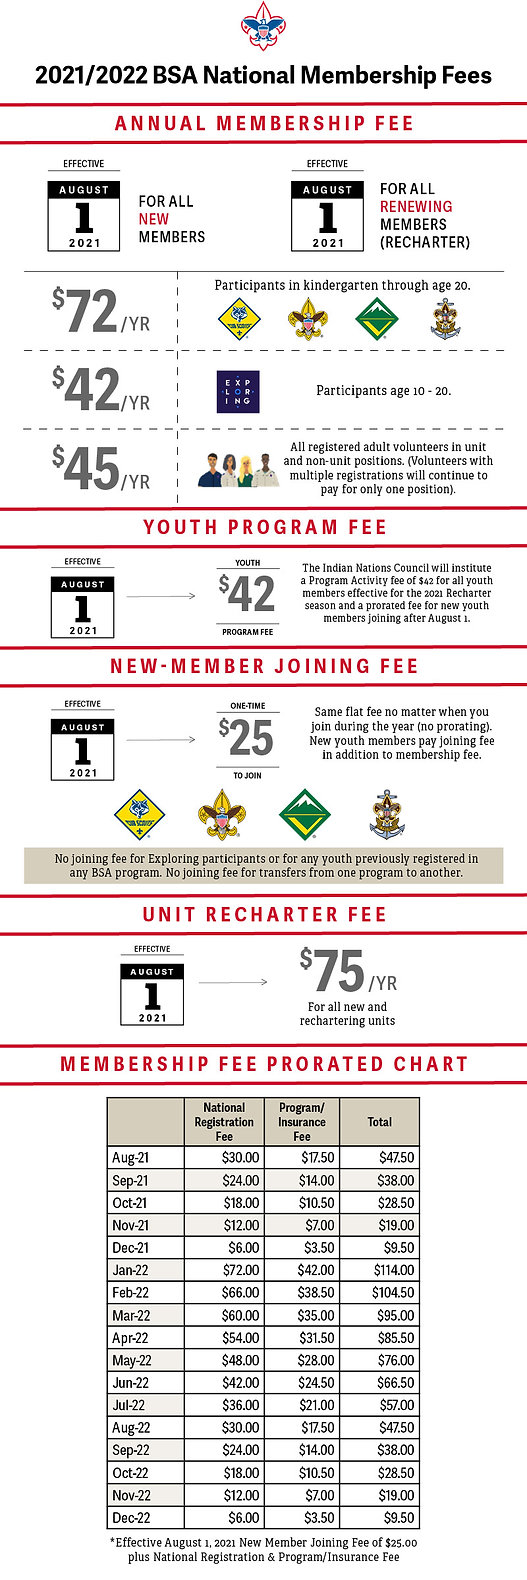 2021_22 Membership Fees Infographic with Prorated Chart copy.jpg